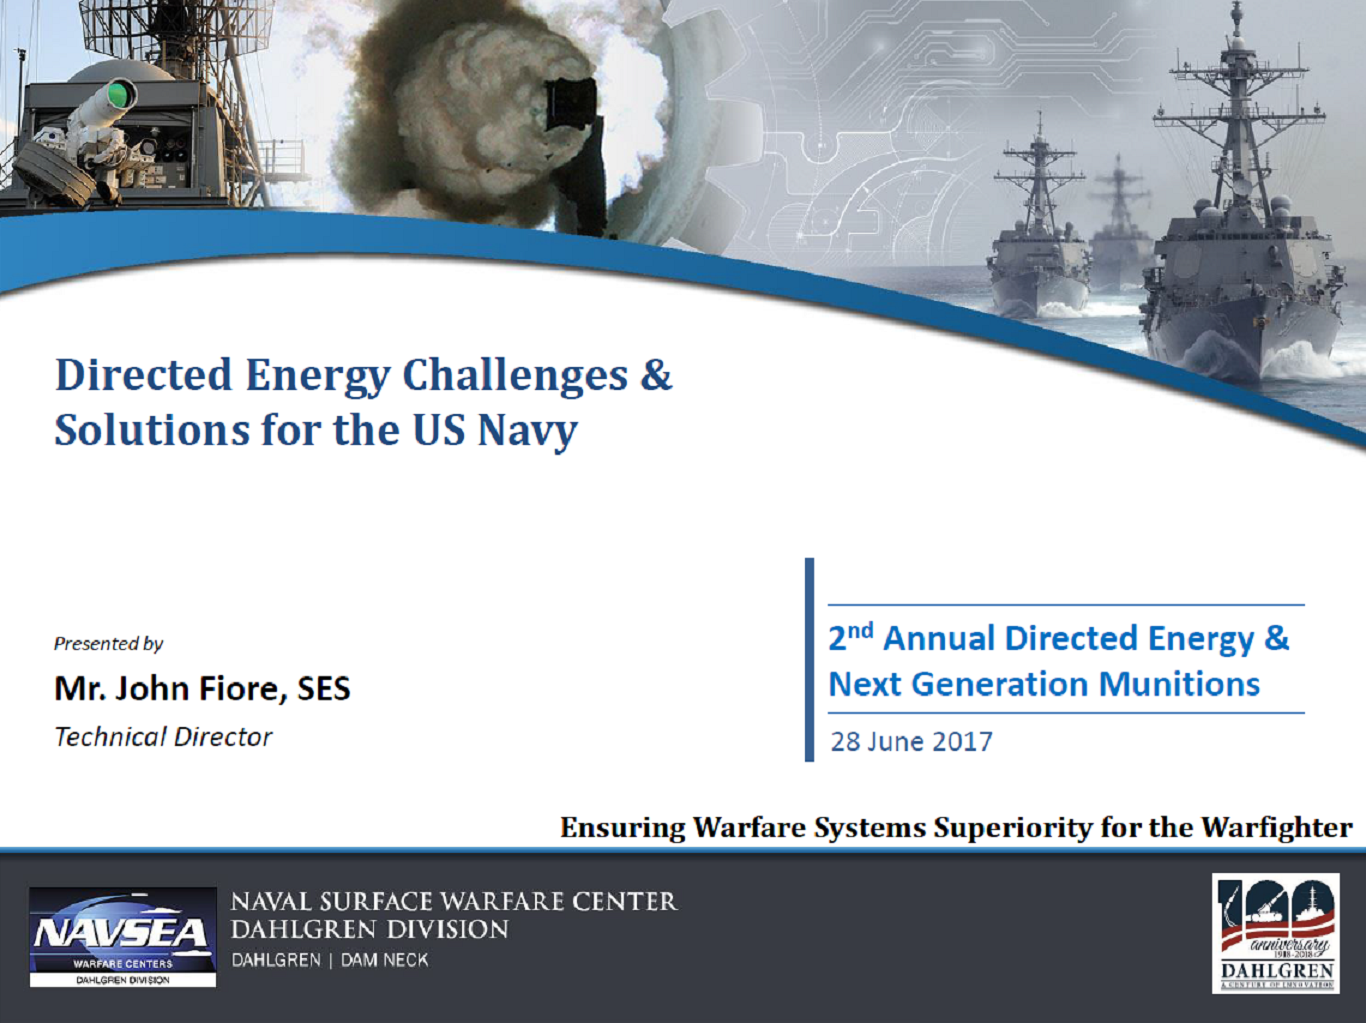 Directed Energy Challenges and Solutions for the U.S. Navy